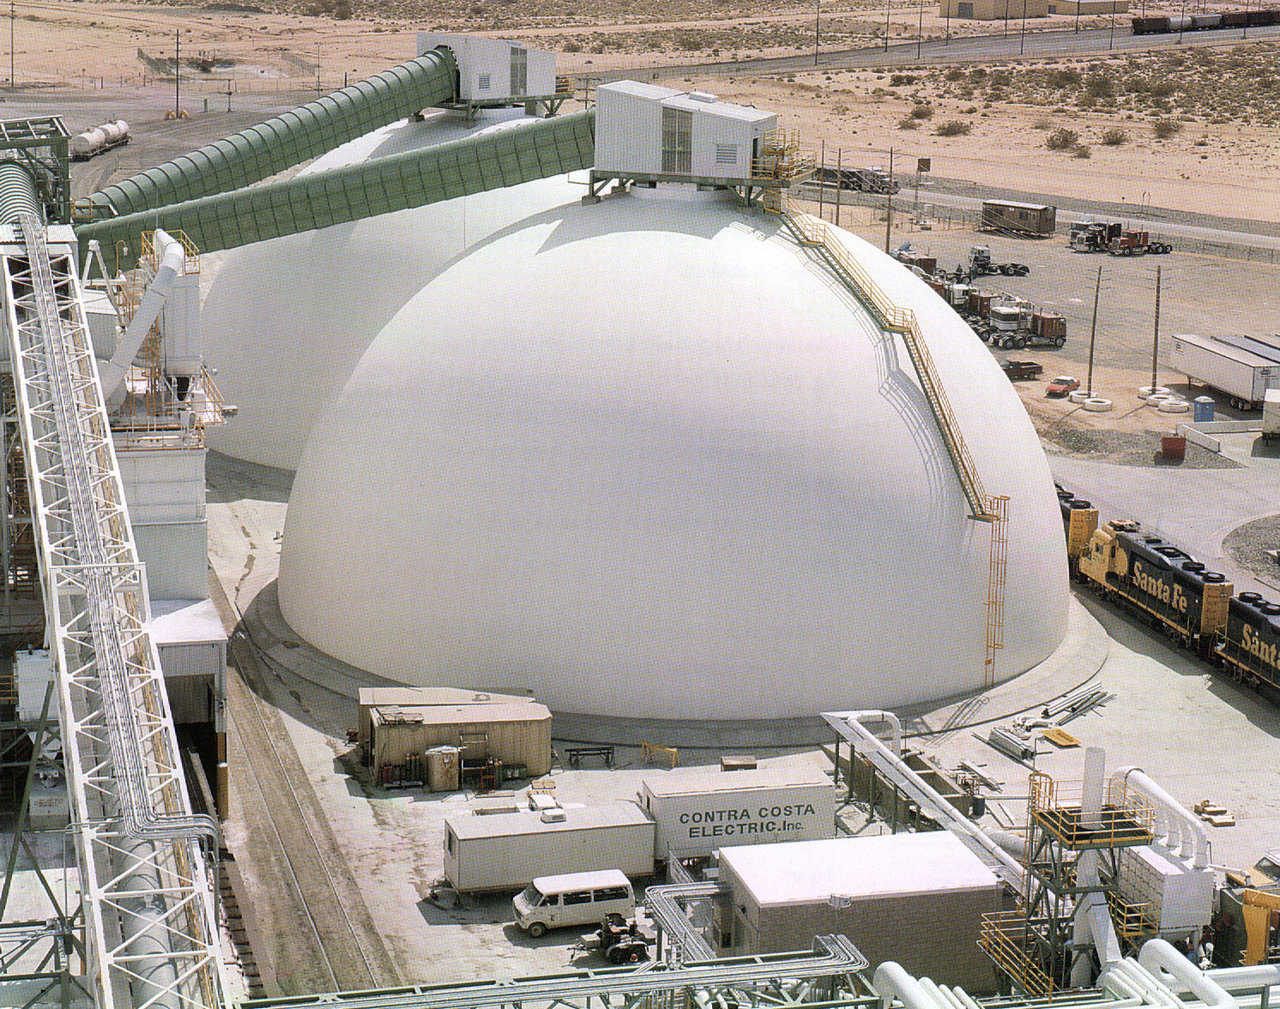 Borax Storages — In Boron, California US Borax mines more than 80 different minerals. The company had two Monolithic Domes, 150′ × 79′, constructed for borax storage.